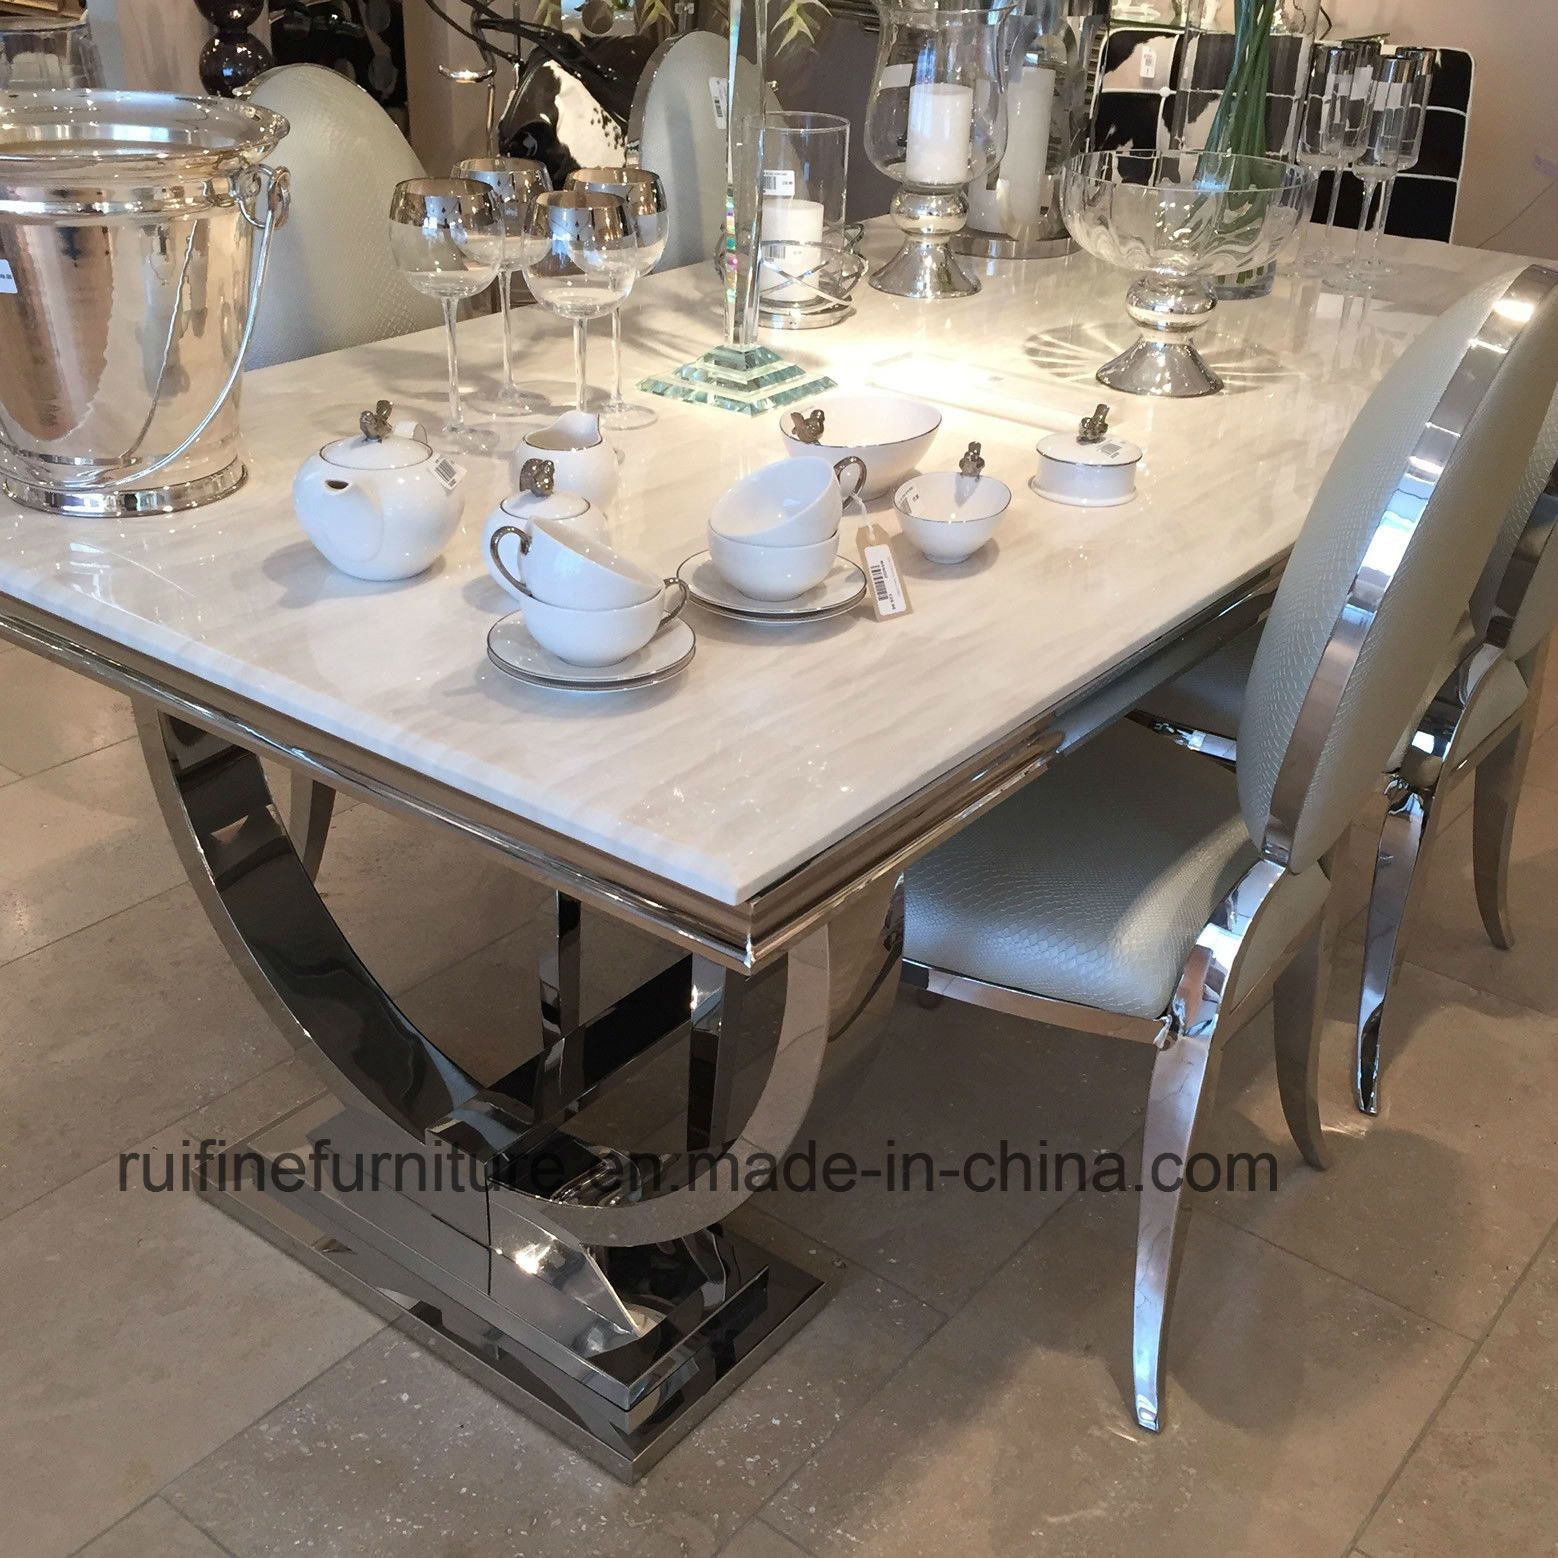 Creative Modern and Natural Arianna Grey Cream Marble Dining Table Stainless Steel Snake Skin Leather Chair  China Dining Table, Dining Table and Chair   MadeinChina com is part of Chrome dining table -